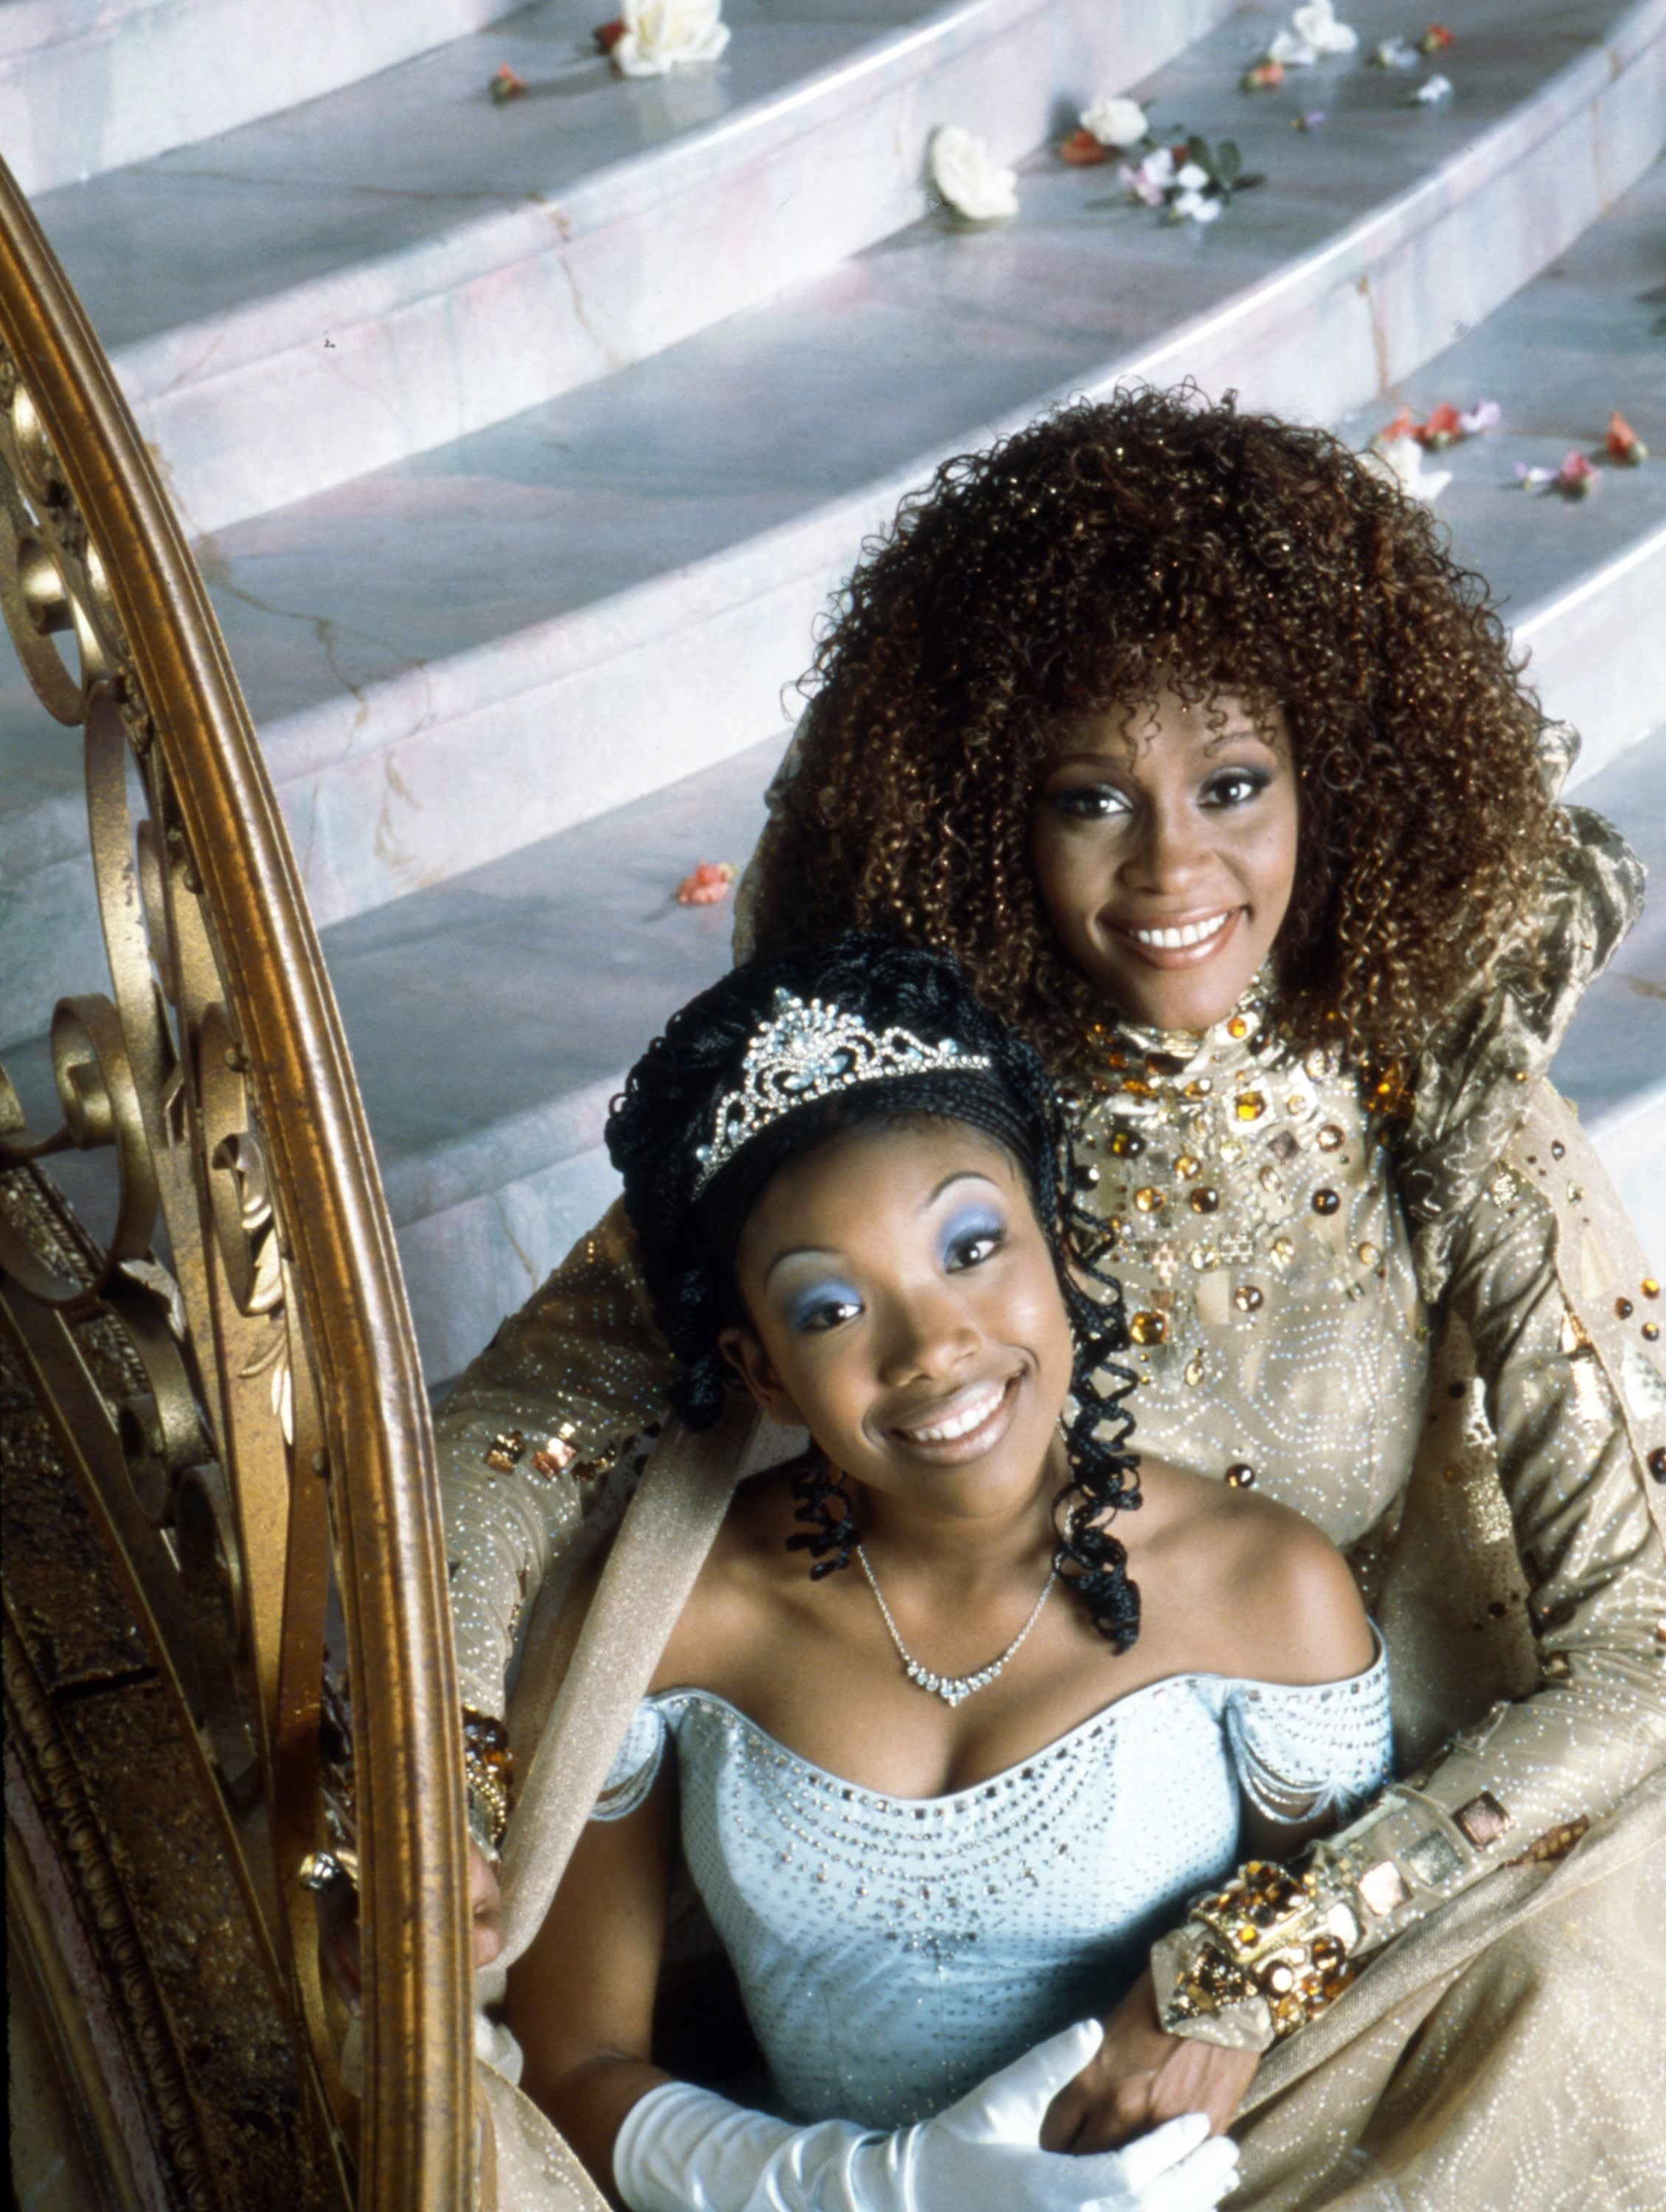 Brandy as Cinderella and Whitney Houston as her fairy godmother